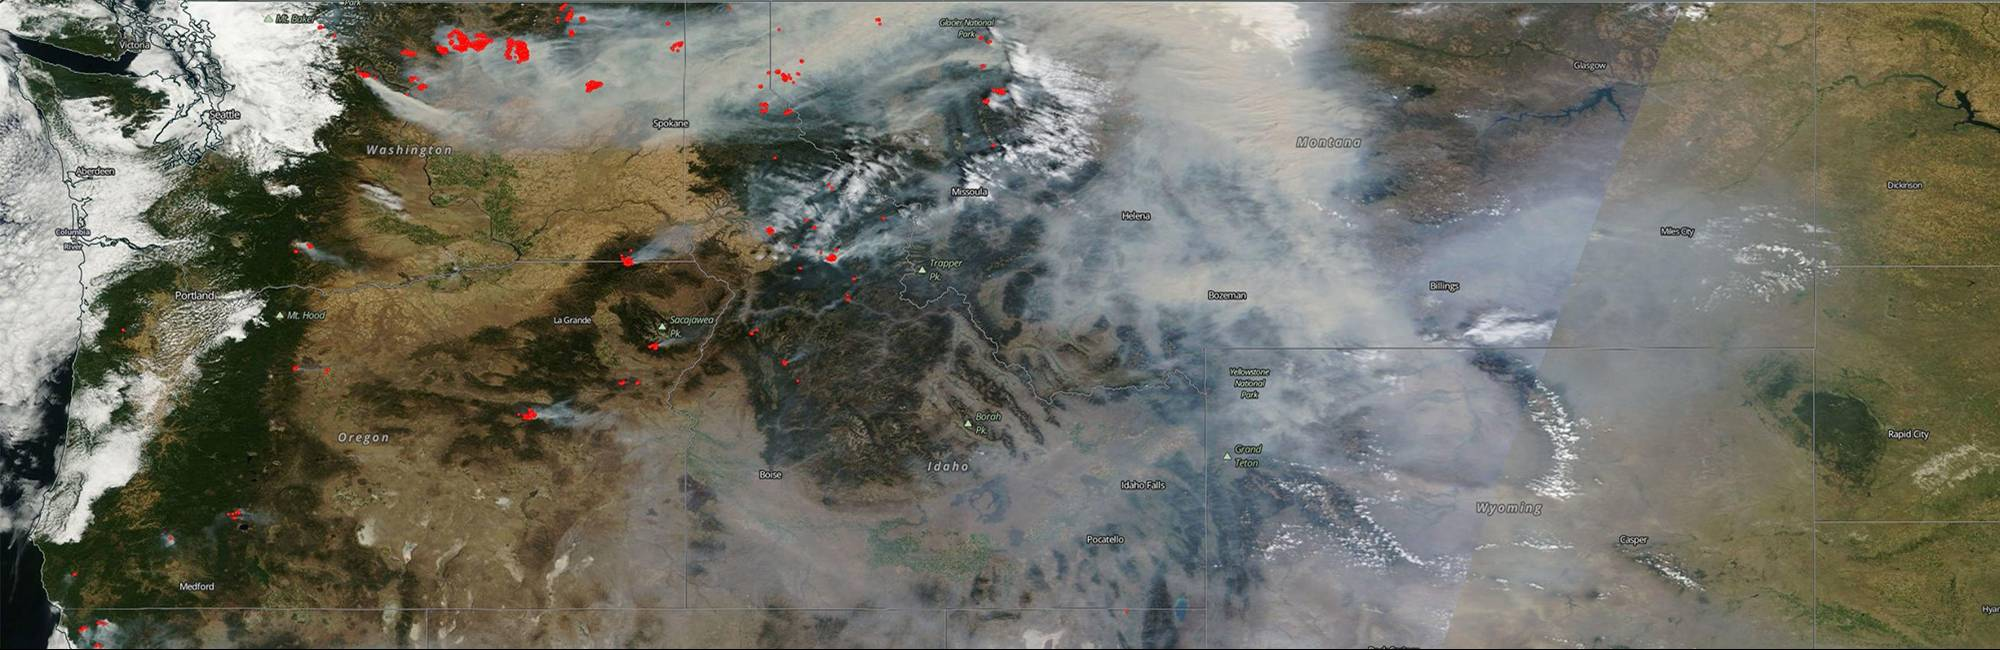 Satellite image of fires in the U.S. Pacific Northwest with smoke spanning the Western United States.